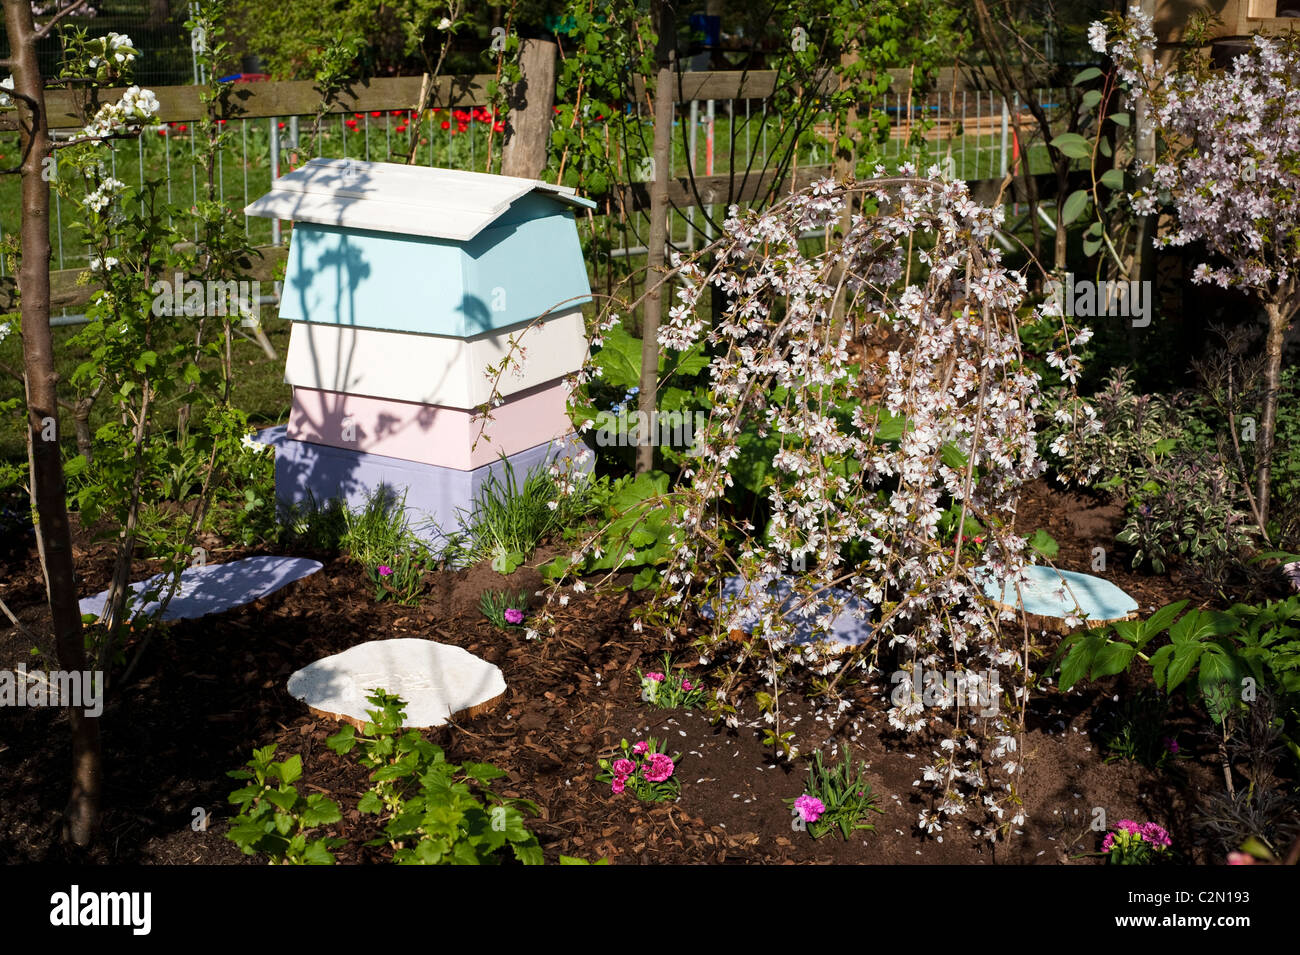 'Sweet Retreat' show garden at RHS Cardiff Flower Show 2011, Wales, United Kingdom - Stock Image